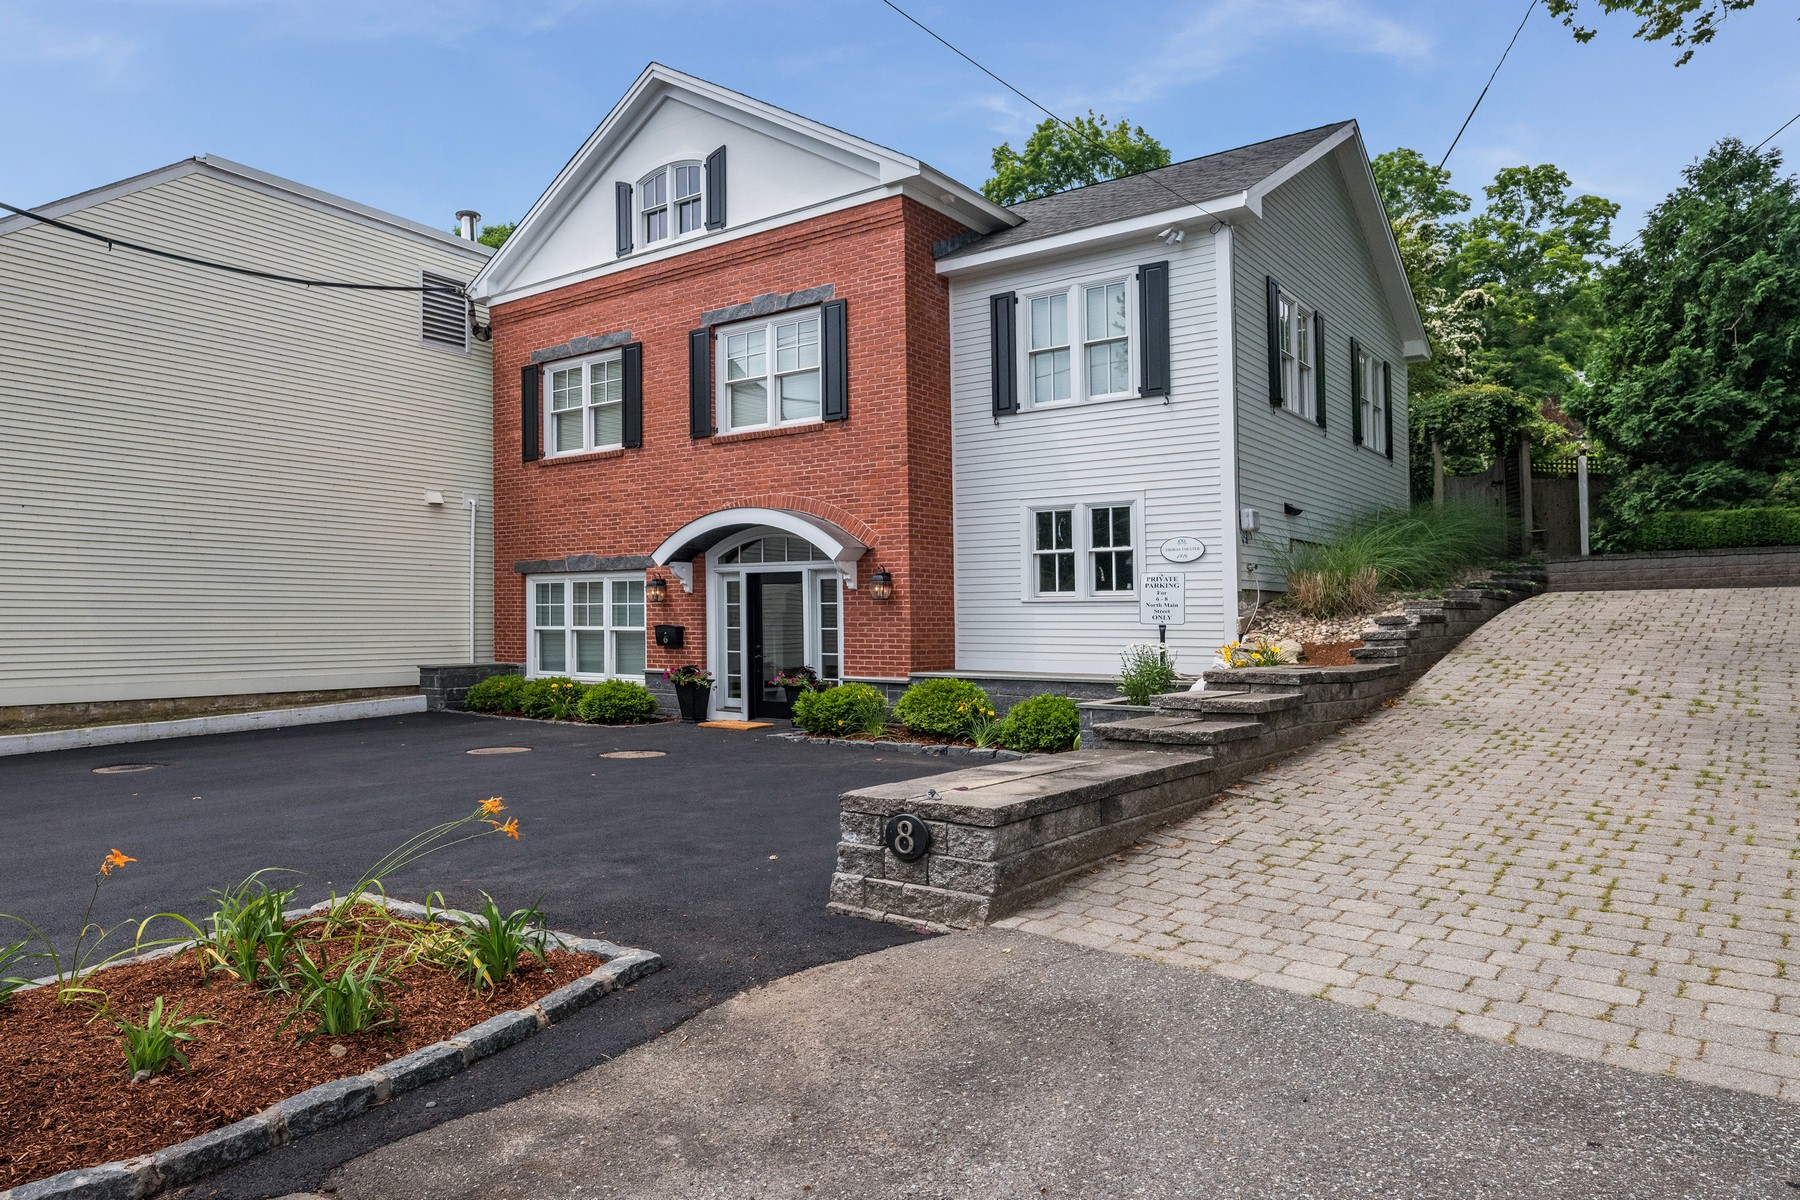 Single Family Homes for Sale at A Spectacular Pied a Terre in the Village 6 North Main Street Essex, Connecticut 06426 United States